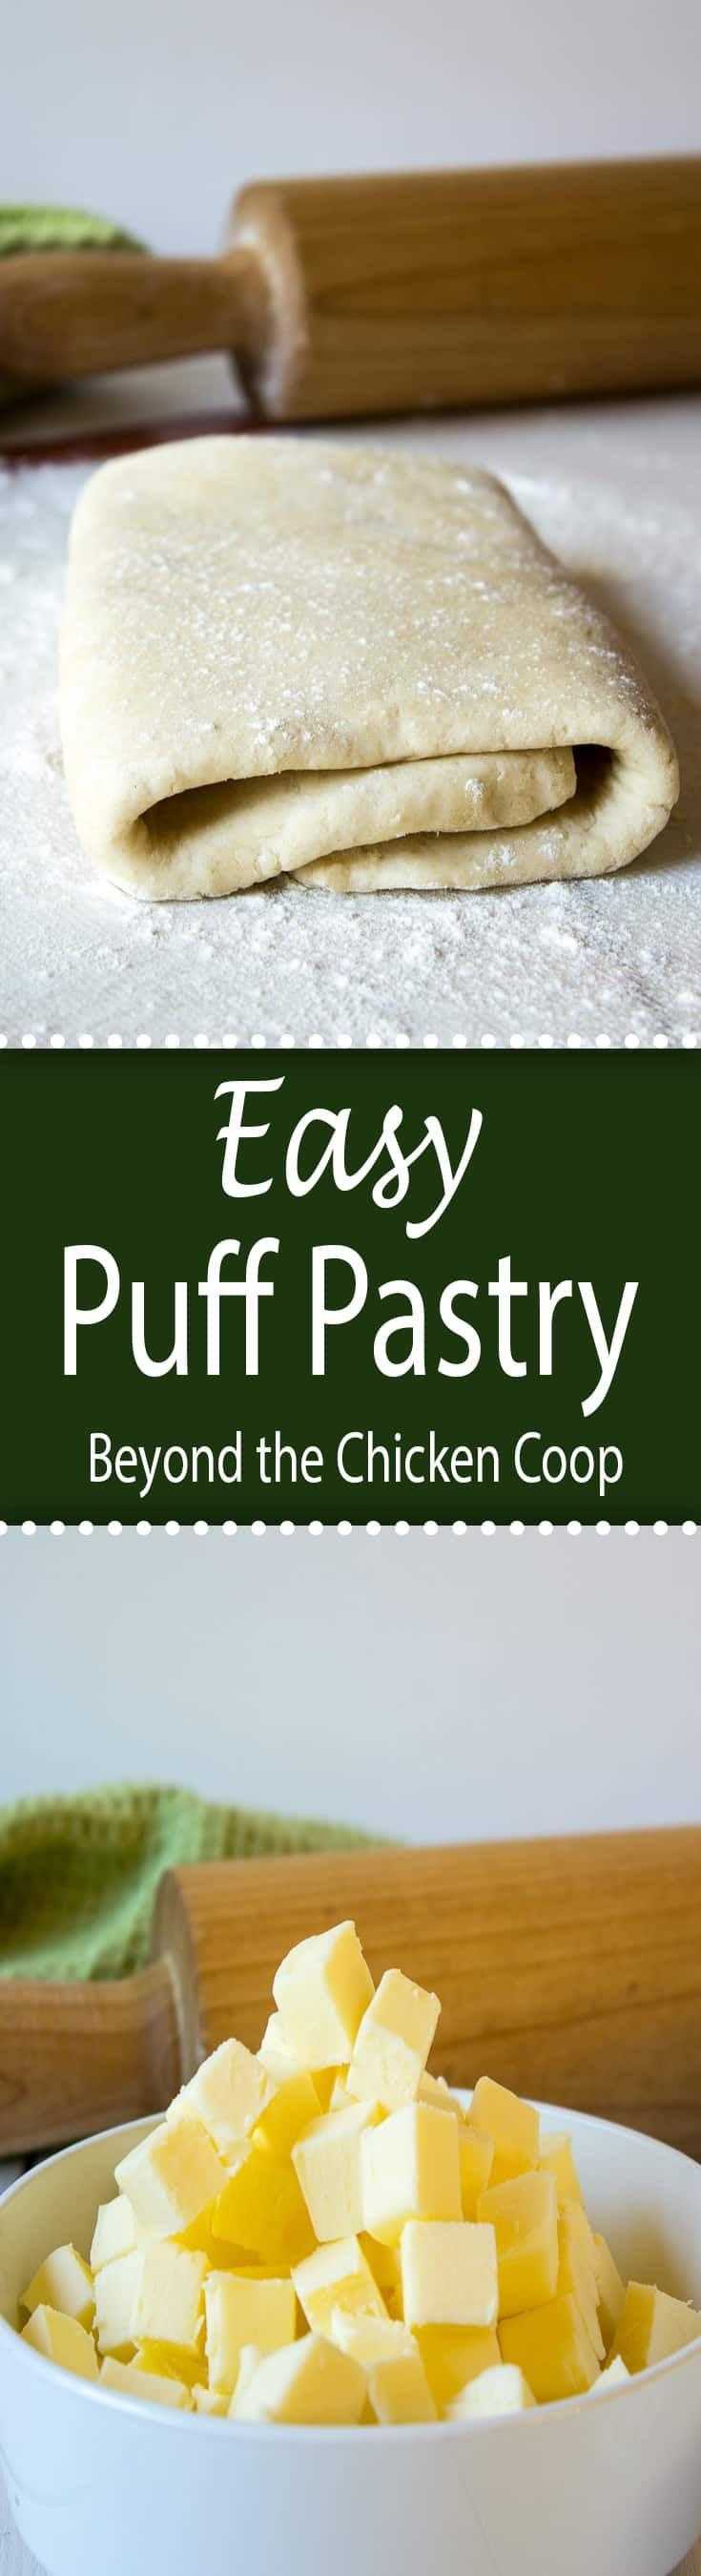 Make your own puff pastry at home using this Easy Puff Pastry Recipe! #puffpastry #easypuffpastry #baking via @Beyondthecoop